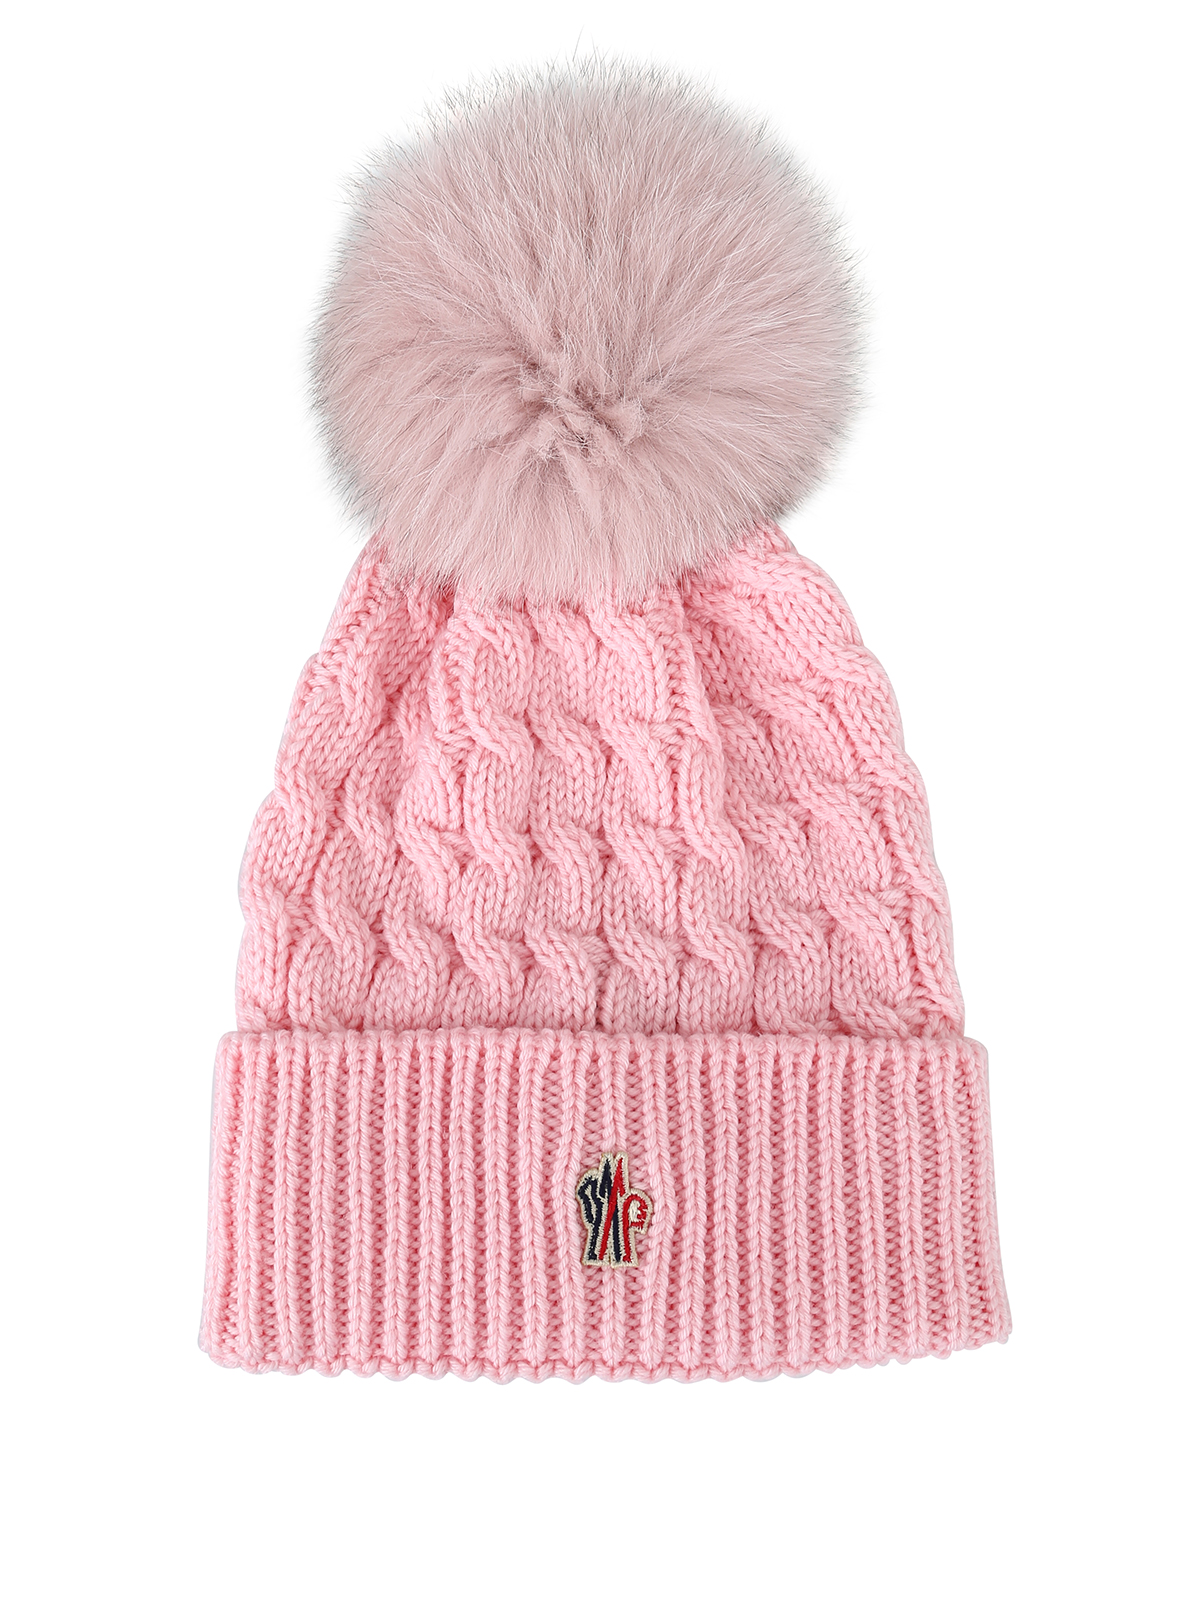 cf887fa8a2e Moncler Grenoble - Fur pompom pink cable knit wool beanie - beanies ...